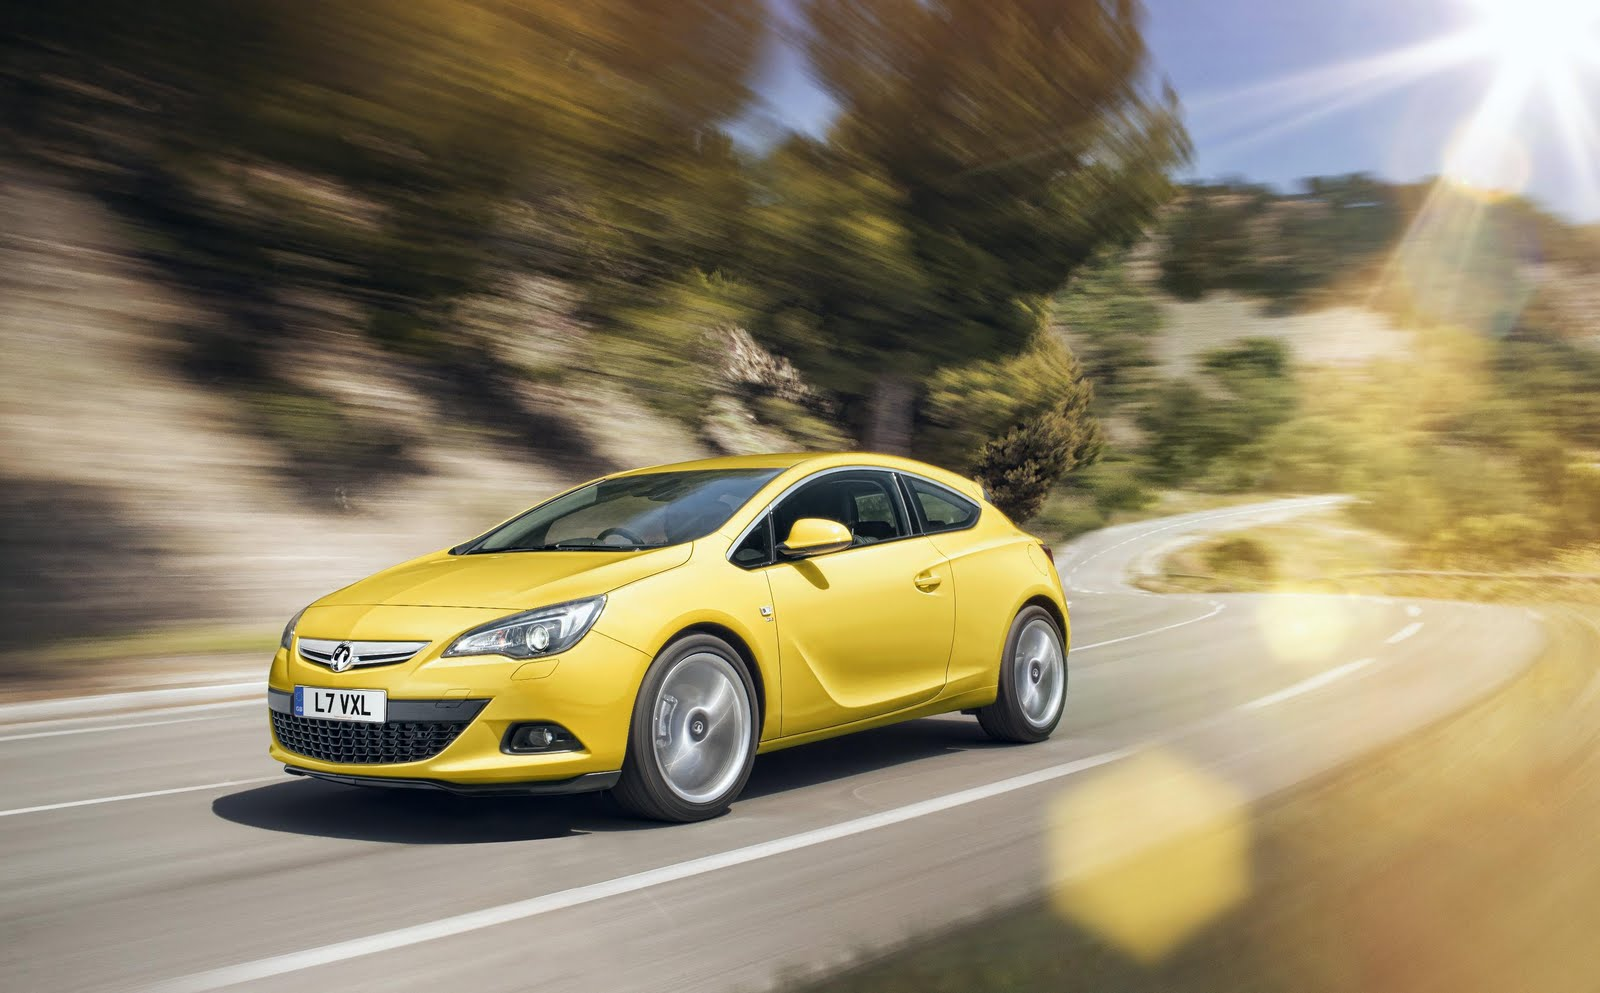 Vauxhall's Astra GTC will make